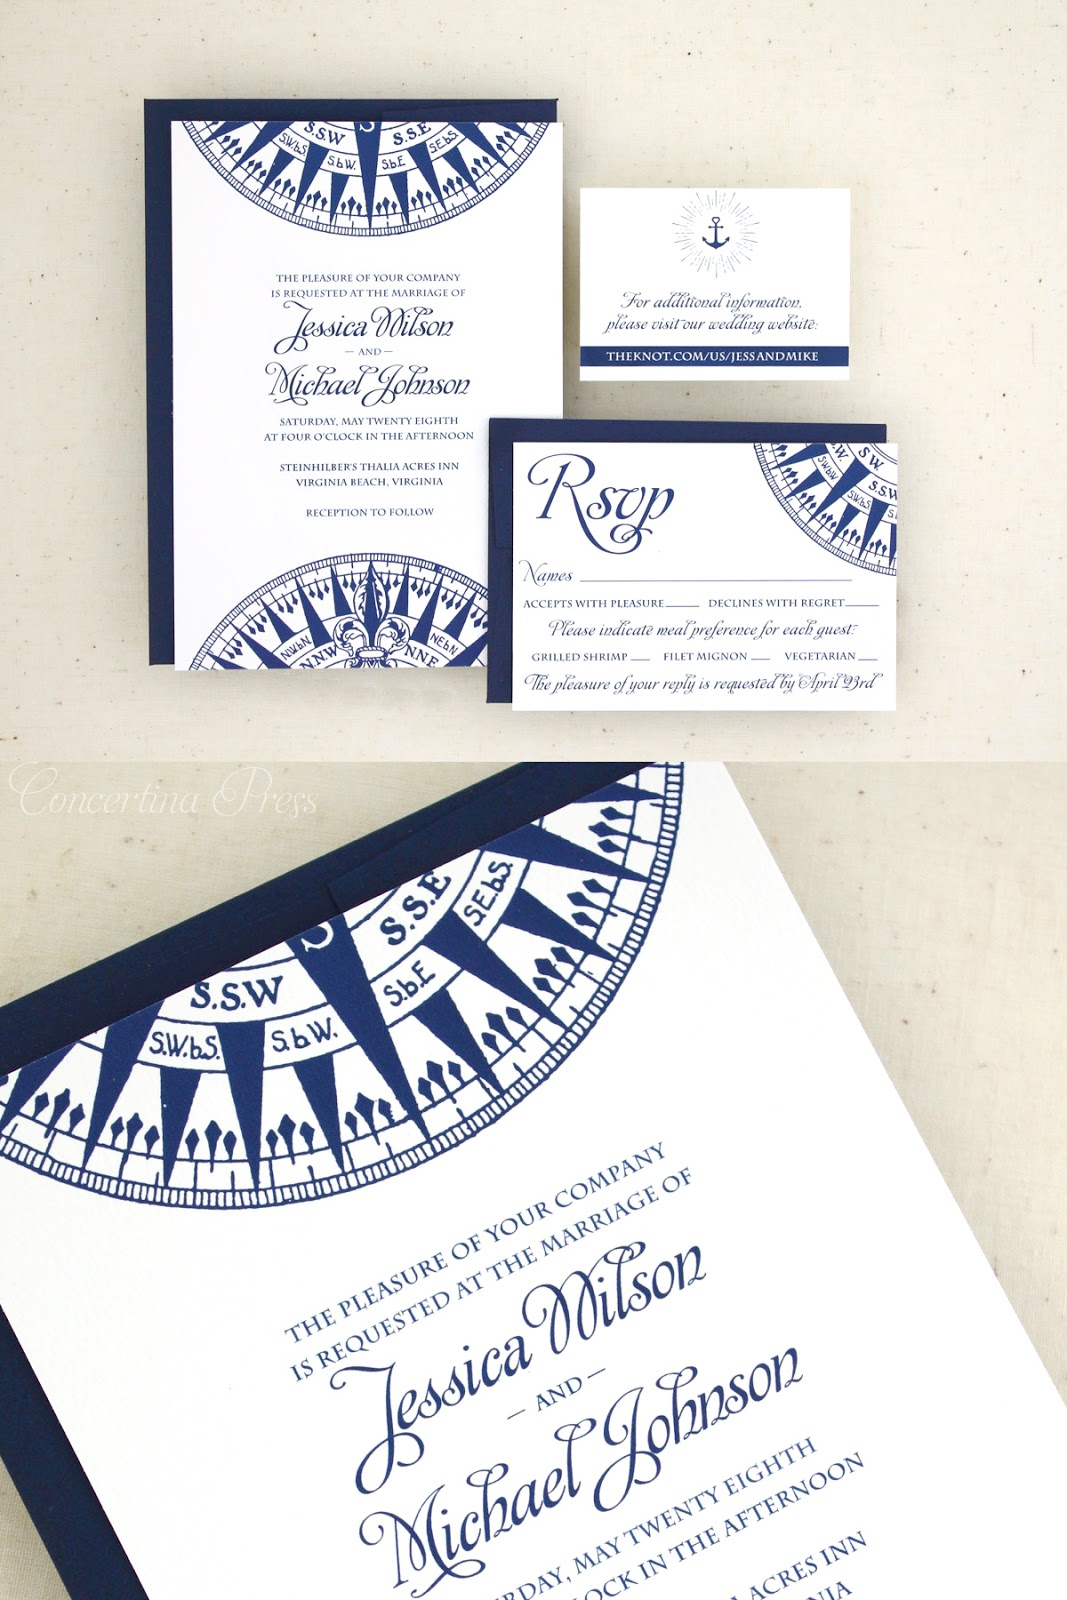 Concertina Press Stationery And Invitations Updated